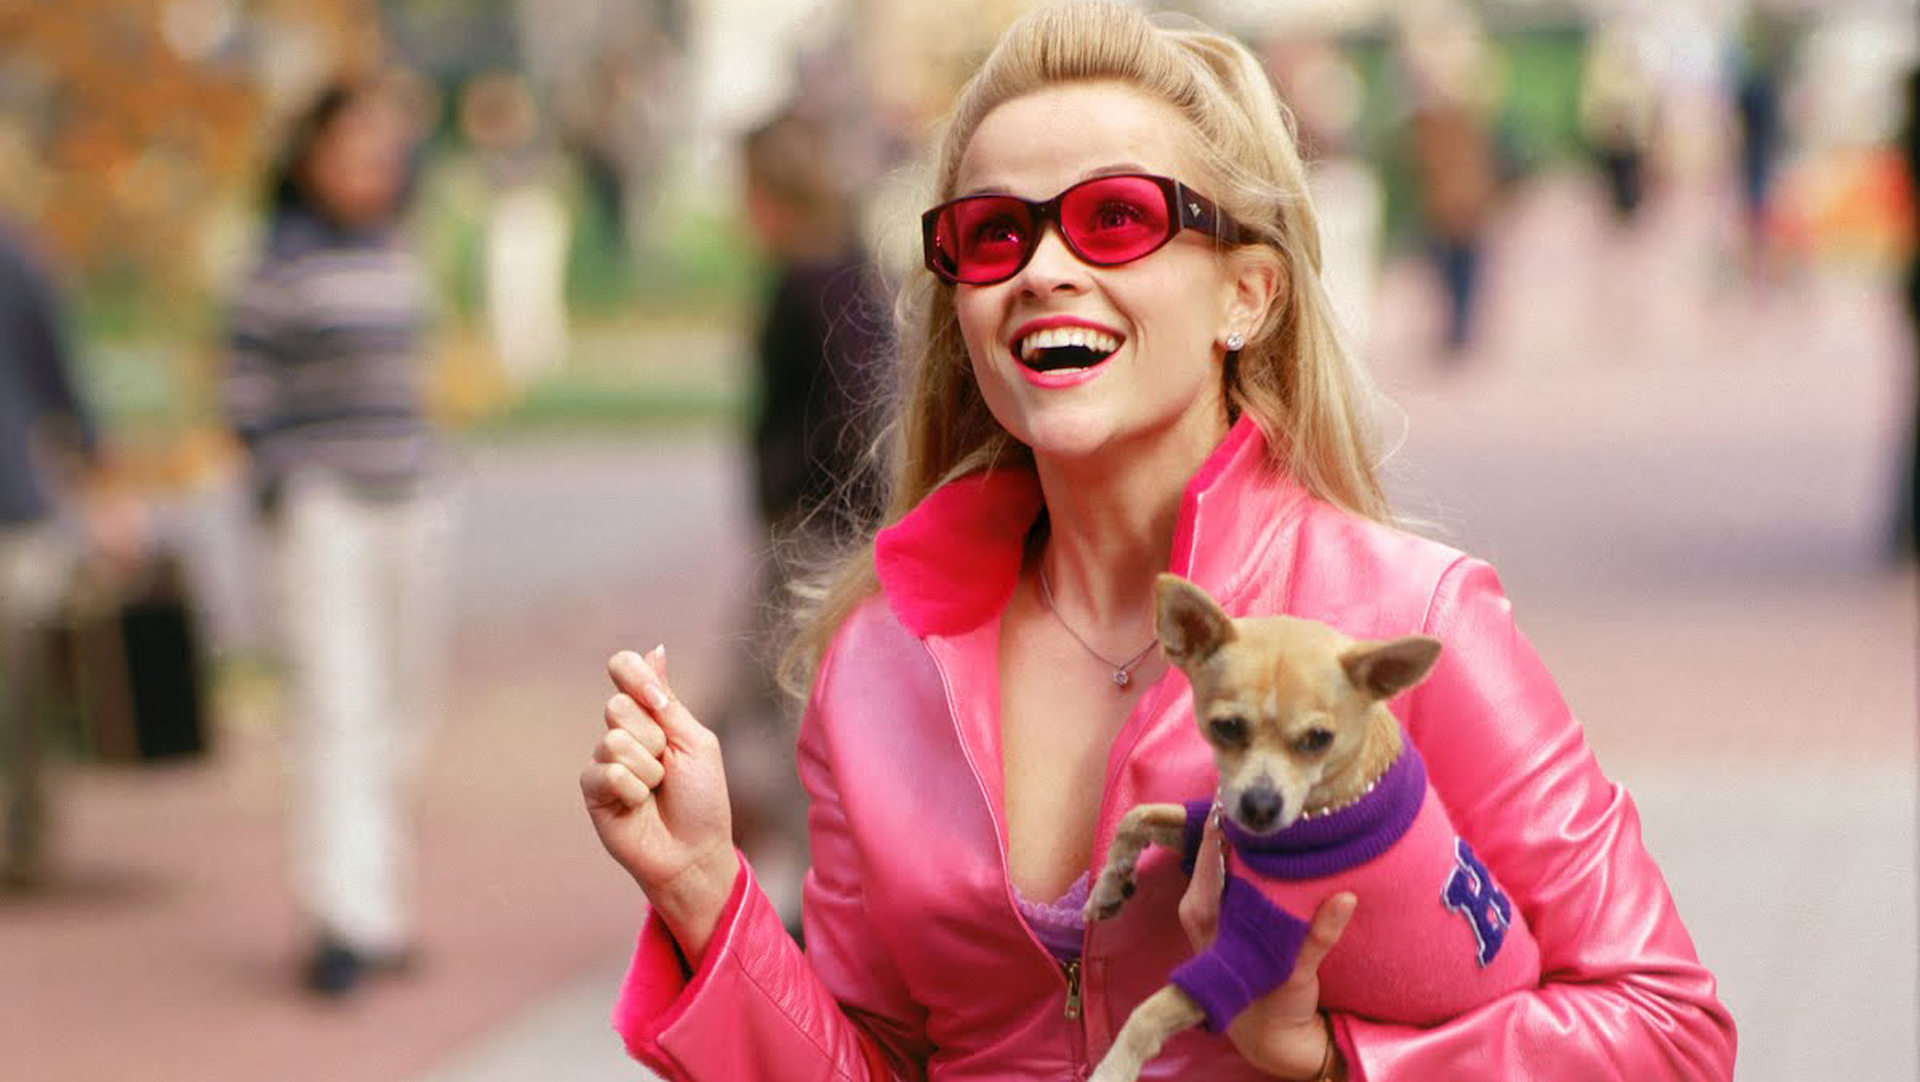 635890746067610566-802553916_legally-blonde-reese-witherspoon-as-elle-woods.jpg